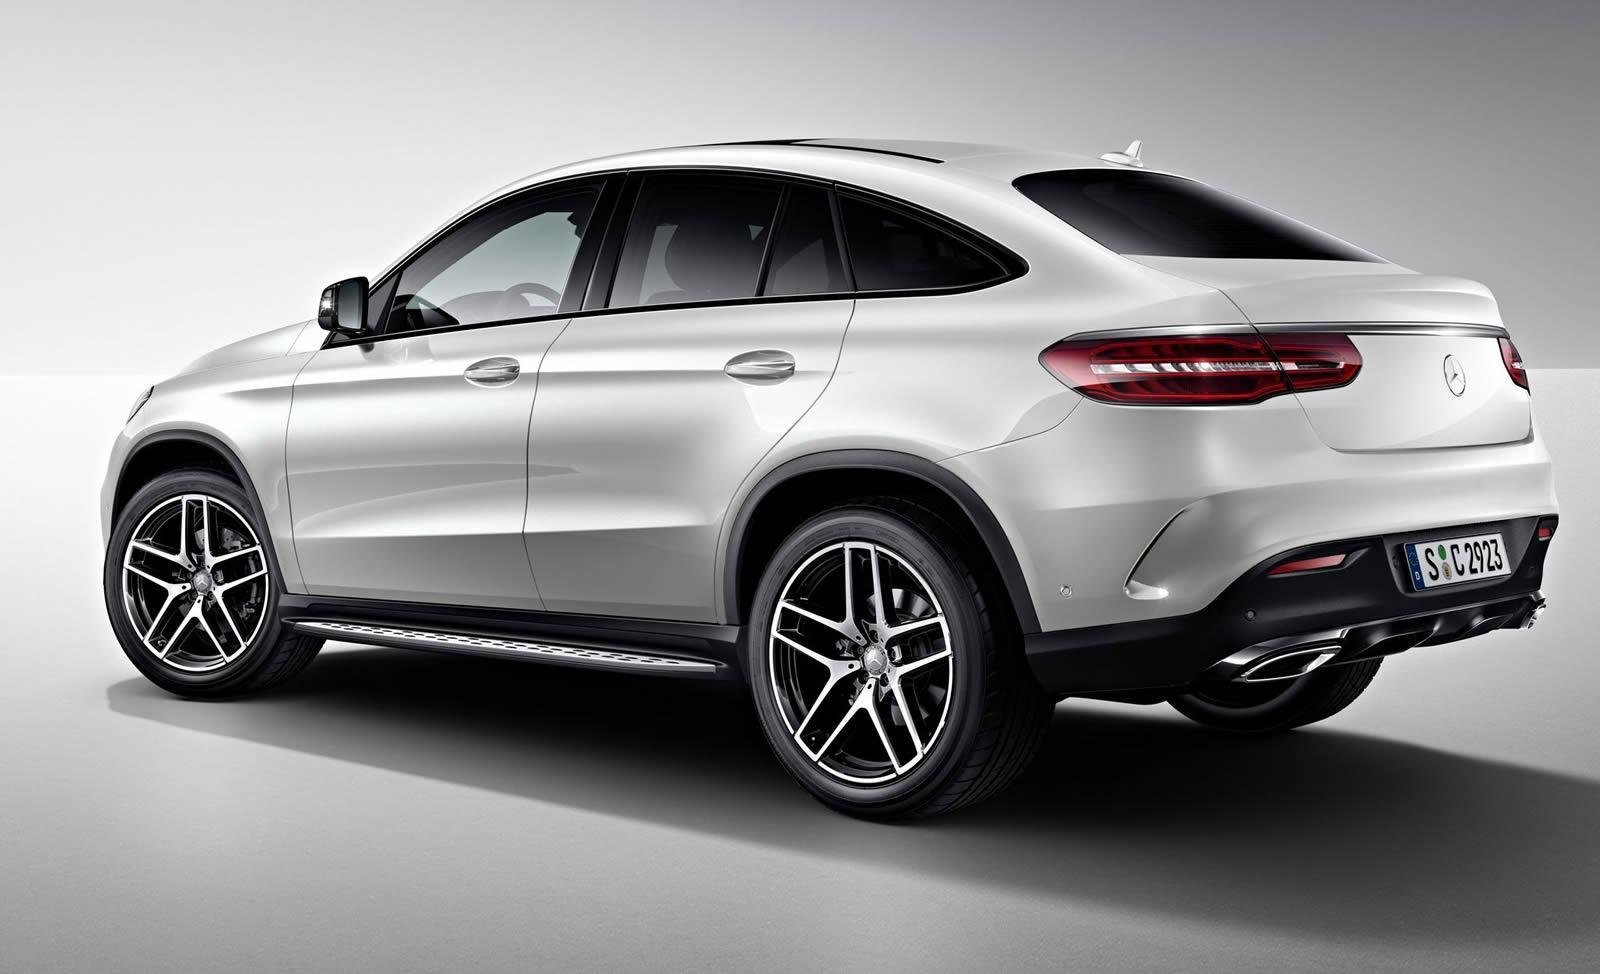 2016 mercedes benz gle coupe night package picture for 2016 mercedes benz gle coupe